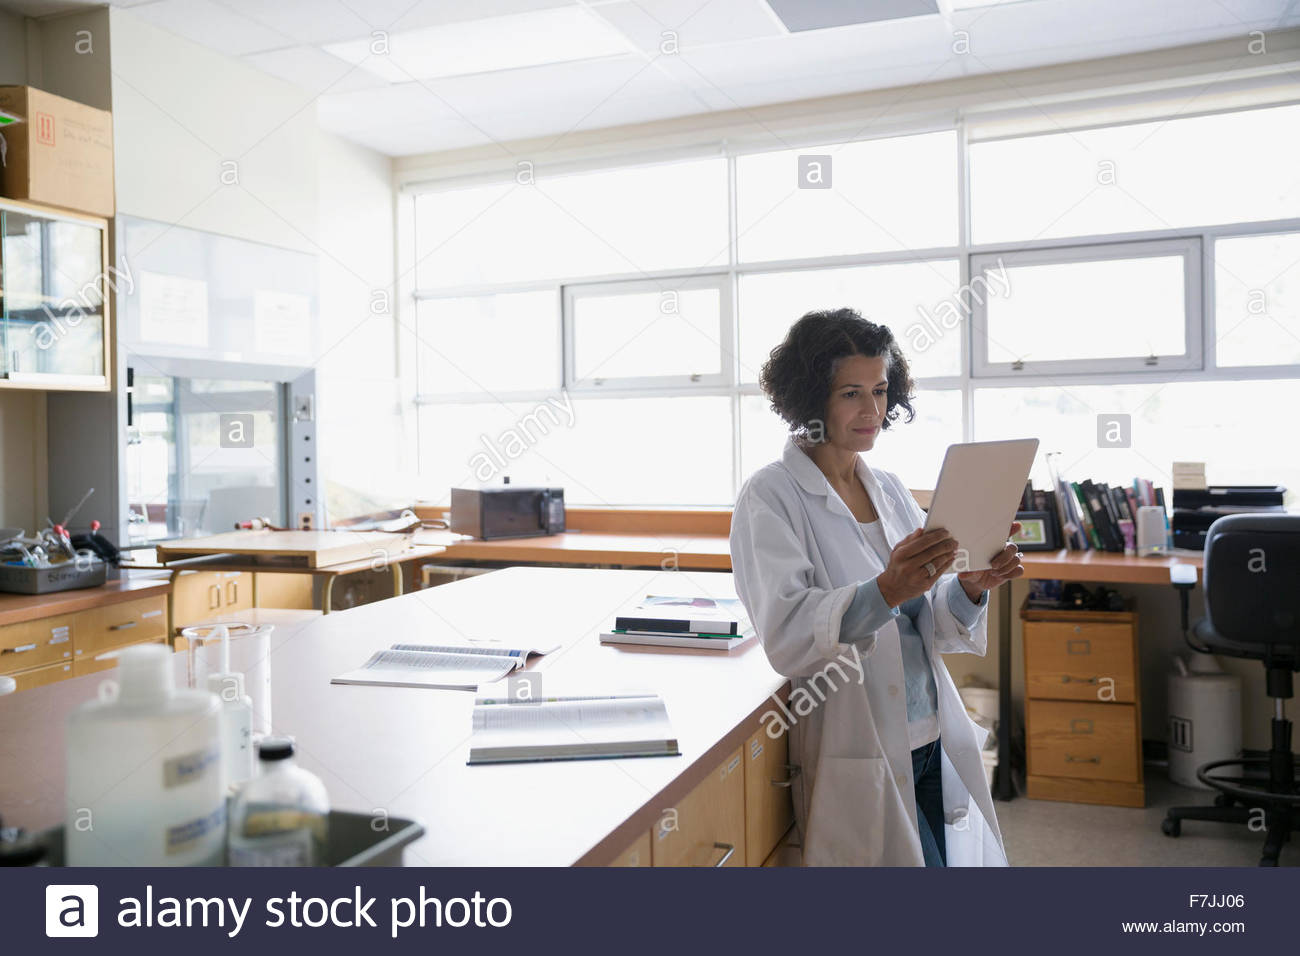 Science teacher with digital tablet in laboratory classroom - Stock Image